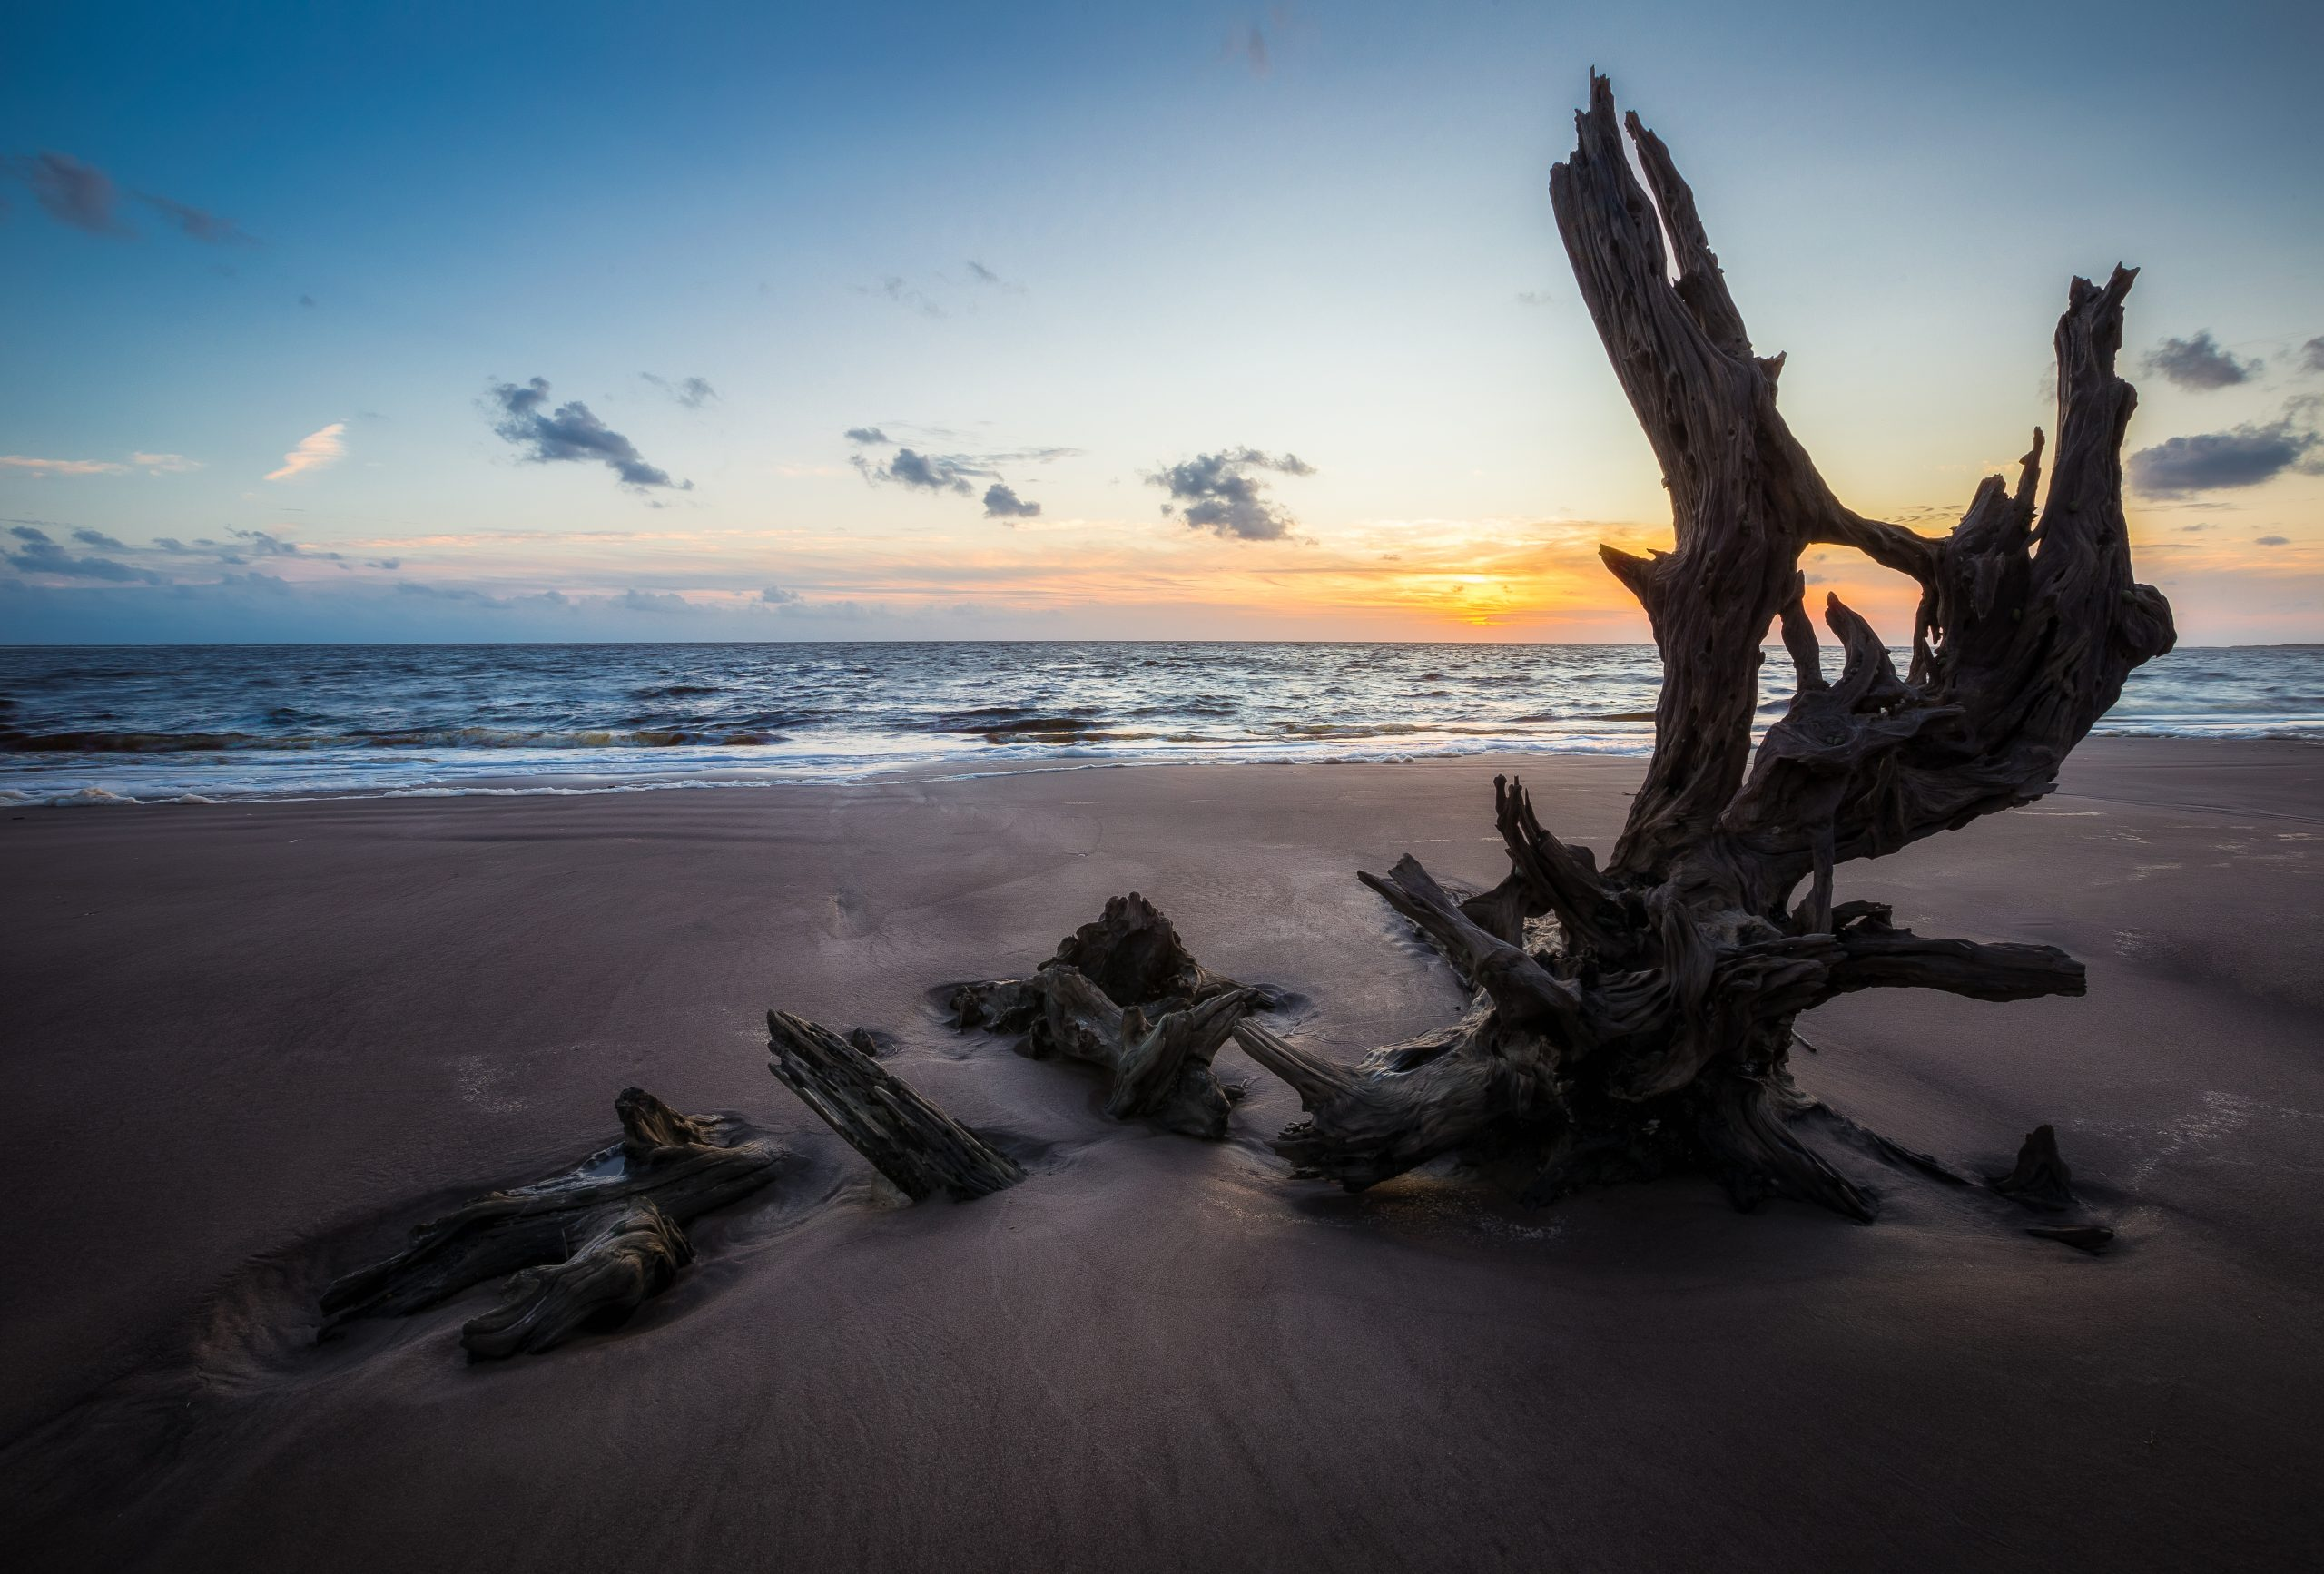 GPW Law Firm is a Leader in Georgia Public Finance - Photo taken at Big Talbot Island at sunrise of a piece of driftwood